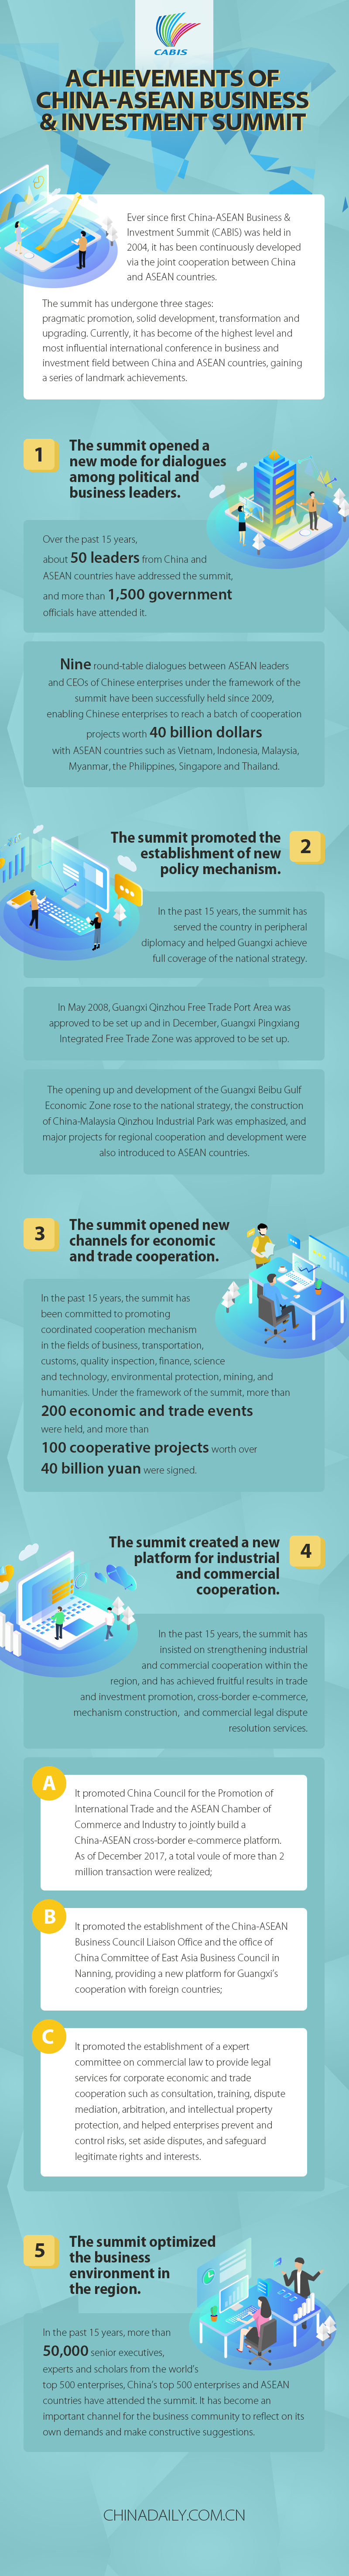 Achievements of China-ASEAN .png